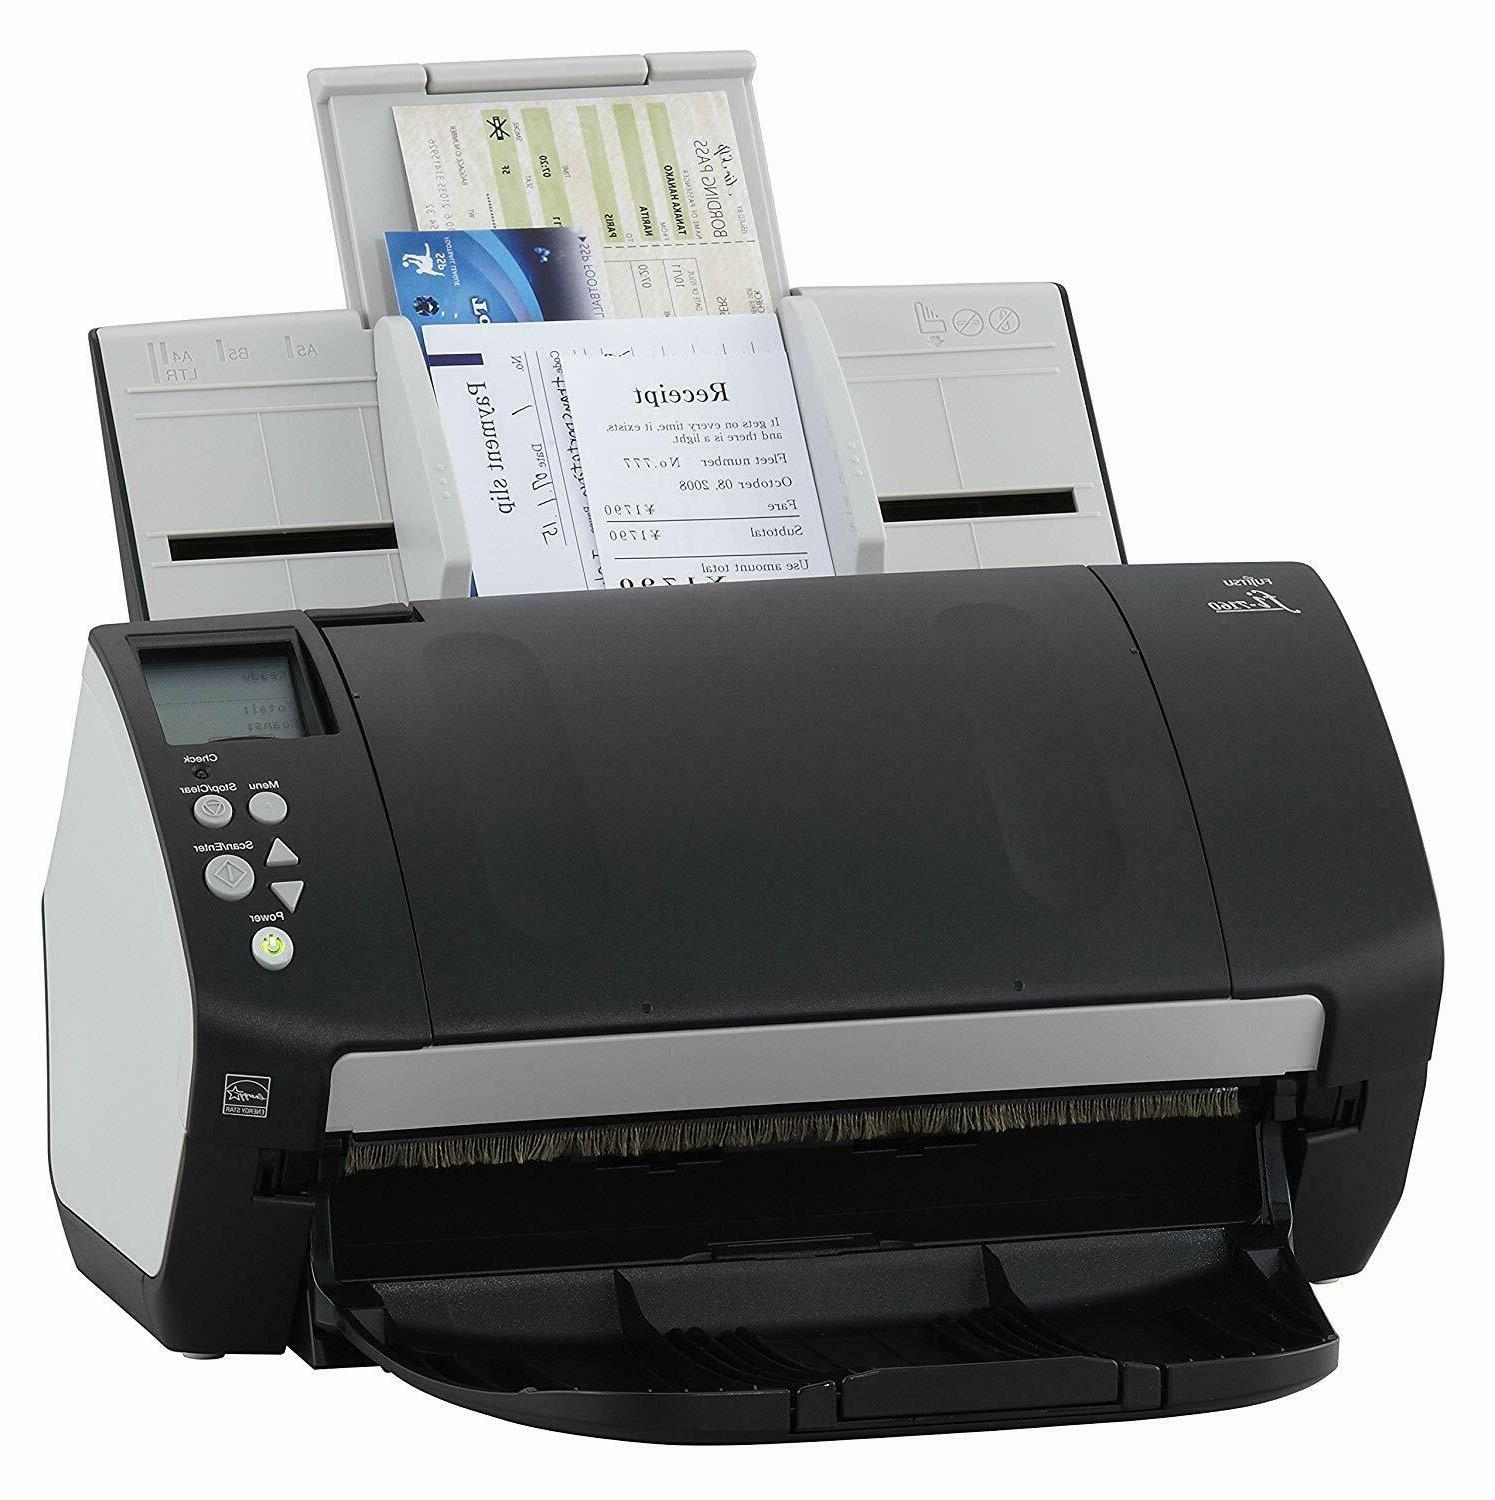 New & Fujitsu fi-7160 Color Scanner - Workgroup